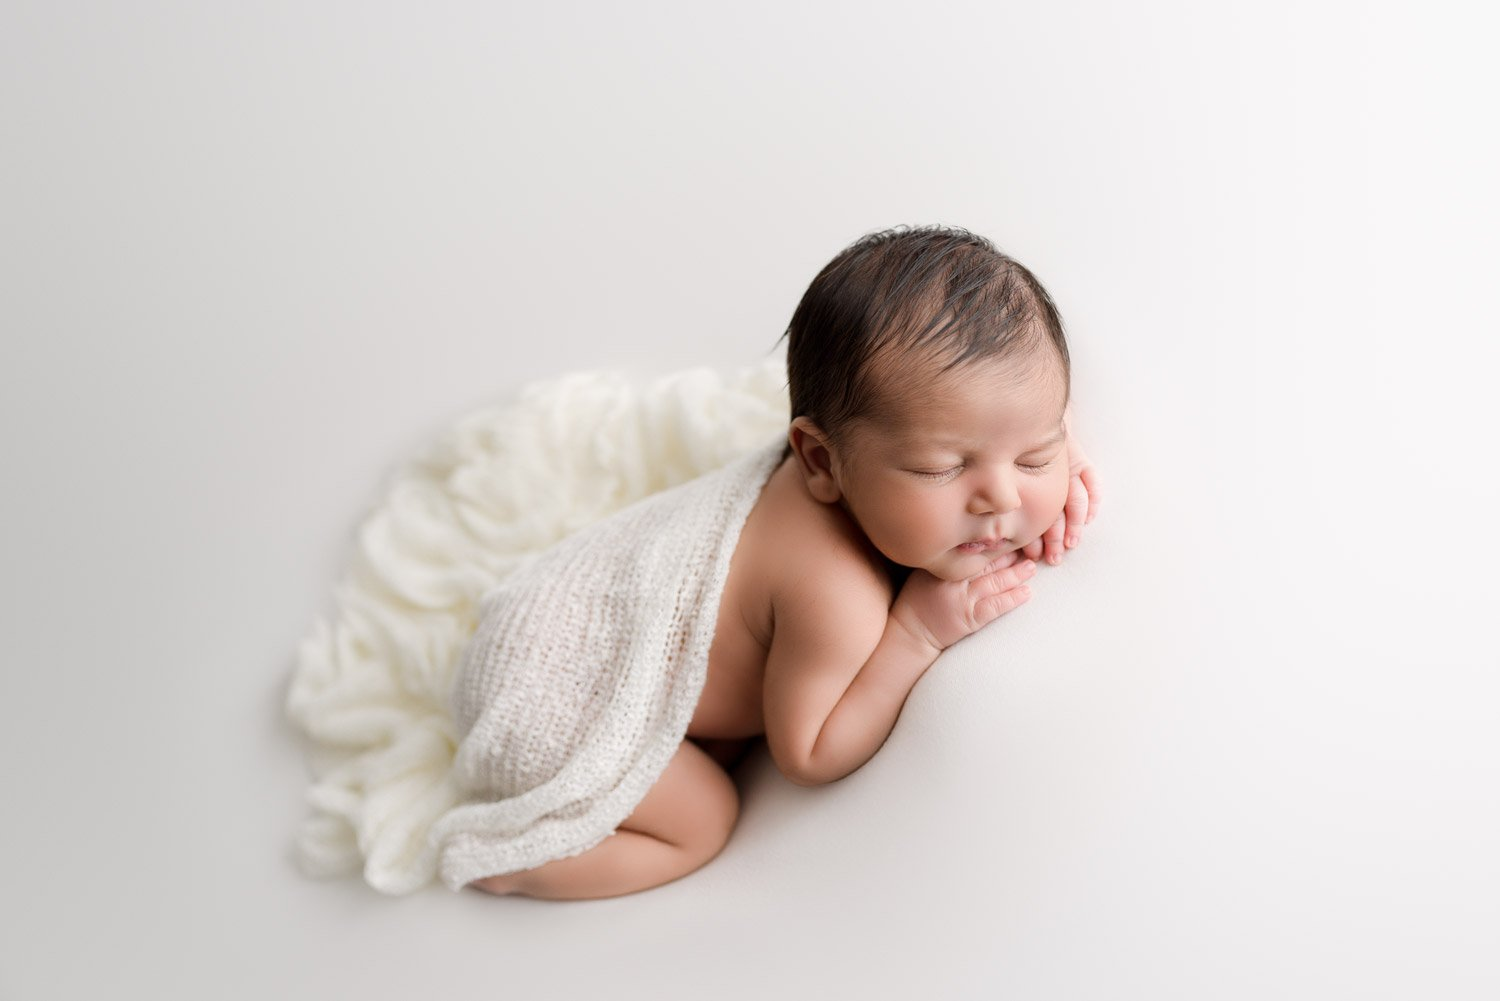 North Vancouver Newborn Boy sleeping draped in a white blanket